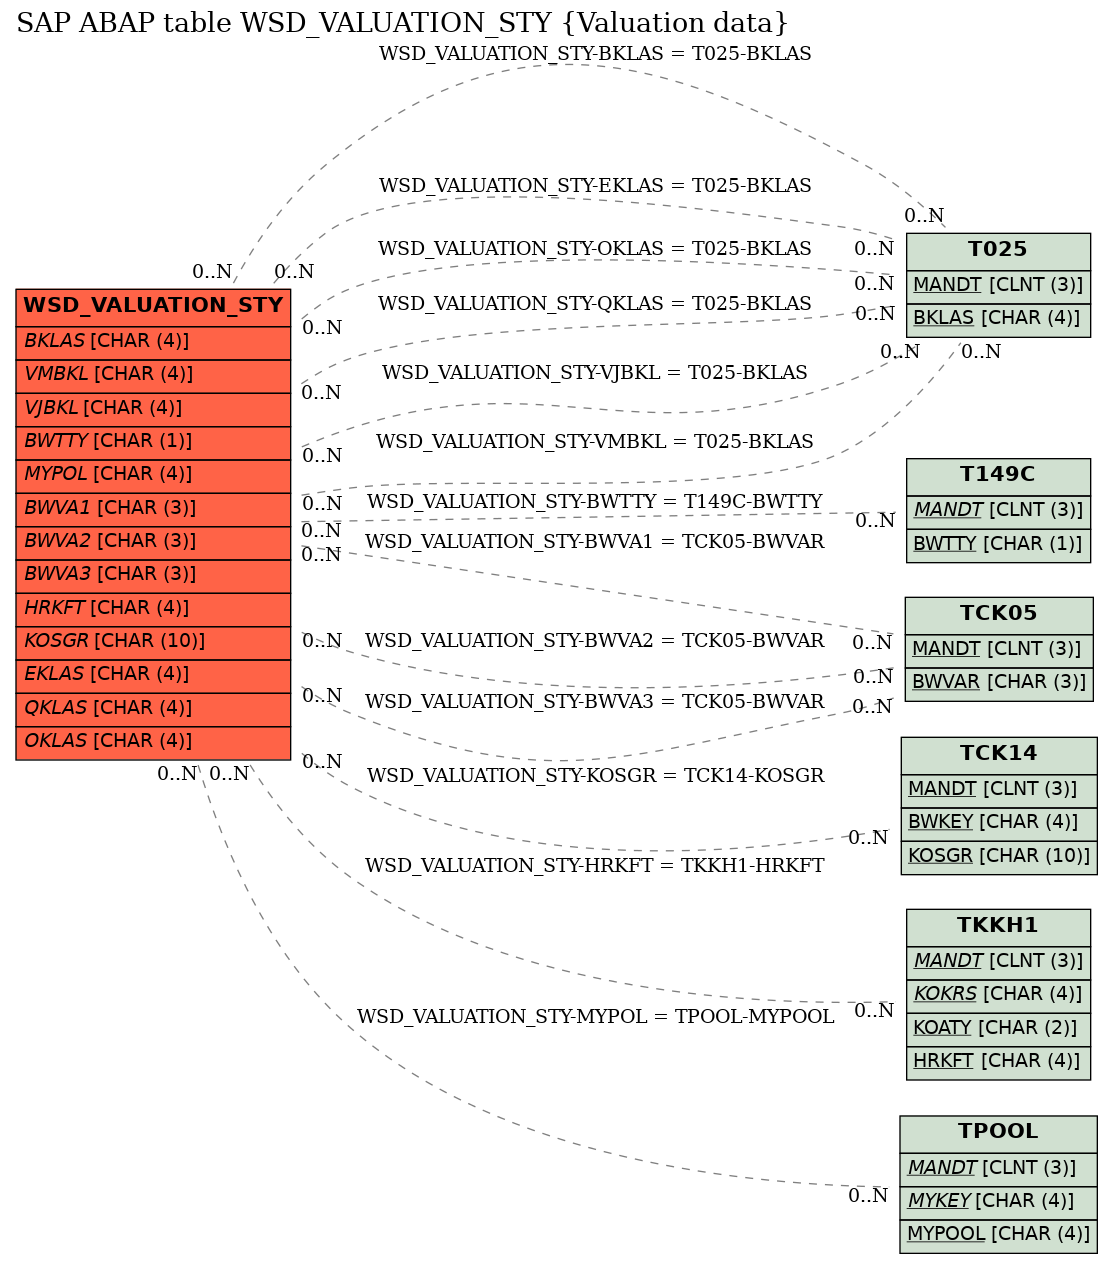 E-R Diagram for table WSD_VALUATION_STY (Valuation data)